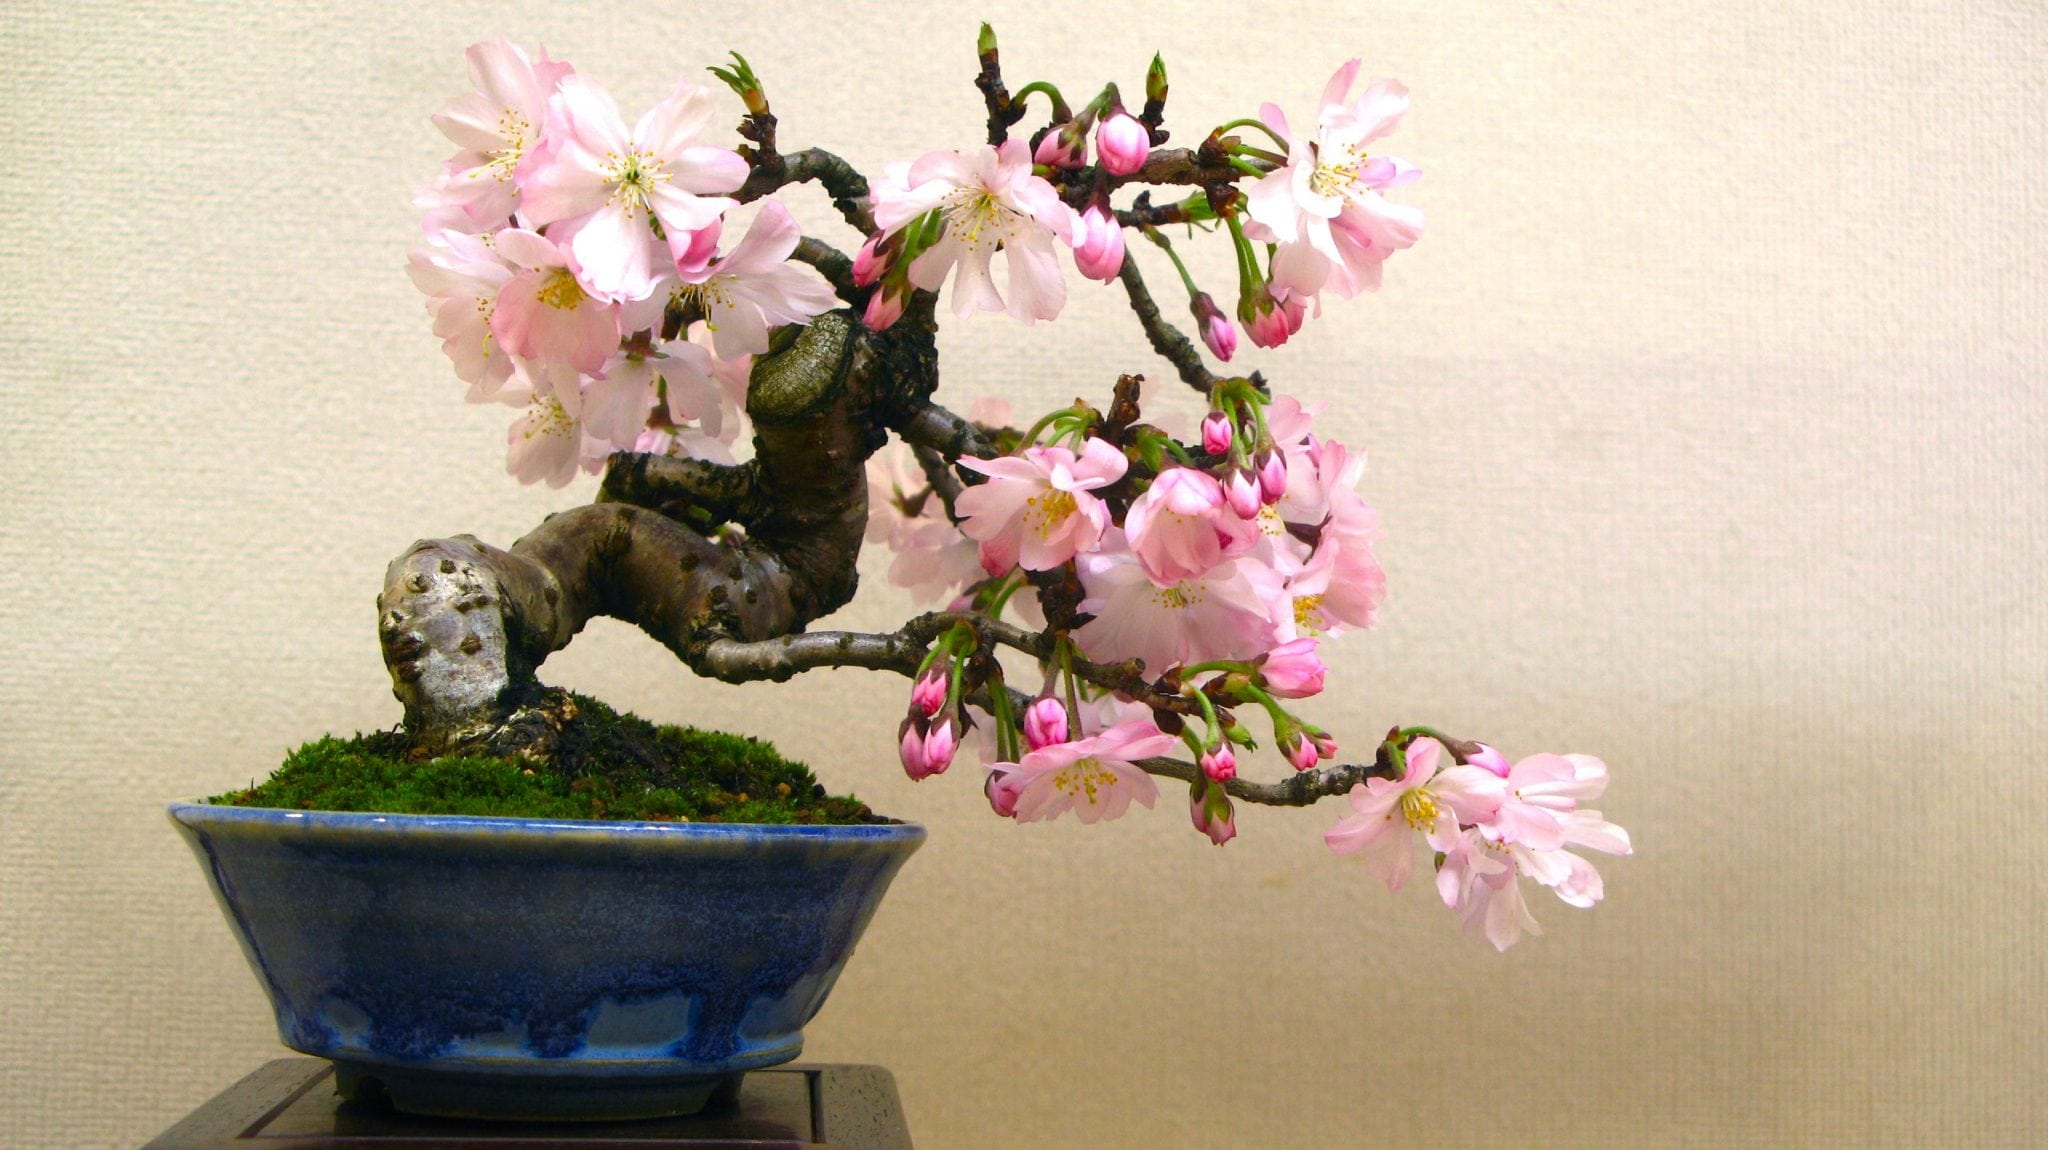 What Does Bonsai Mean And Symbolize Bonsai Tree Gardener